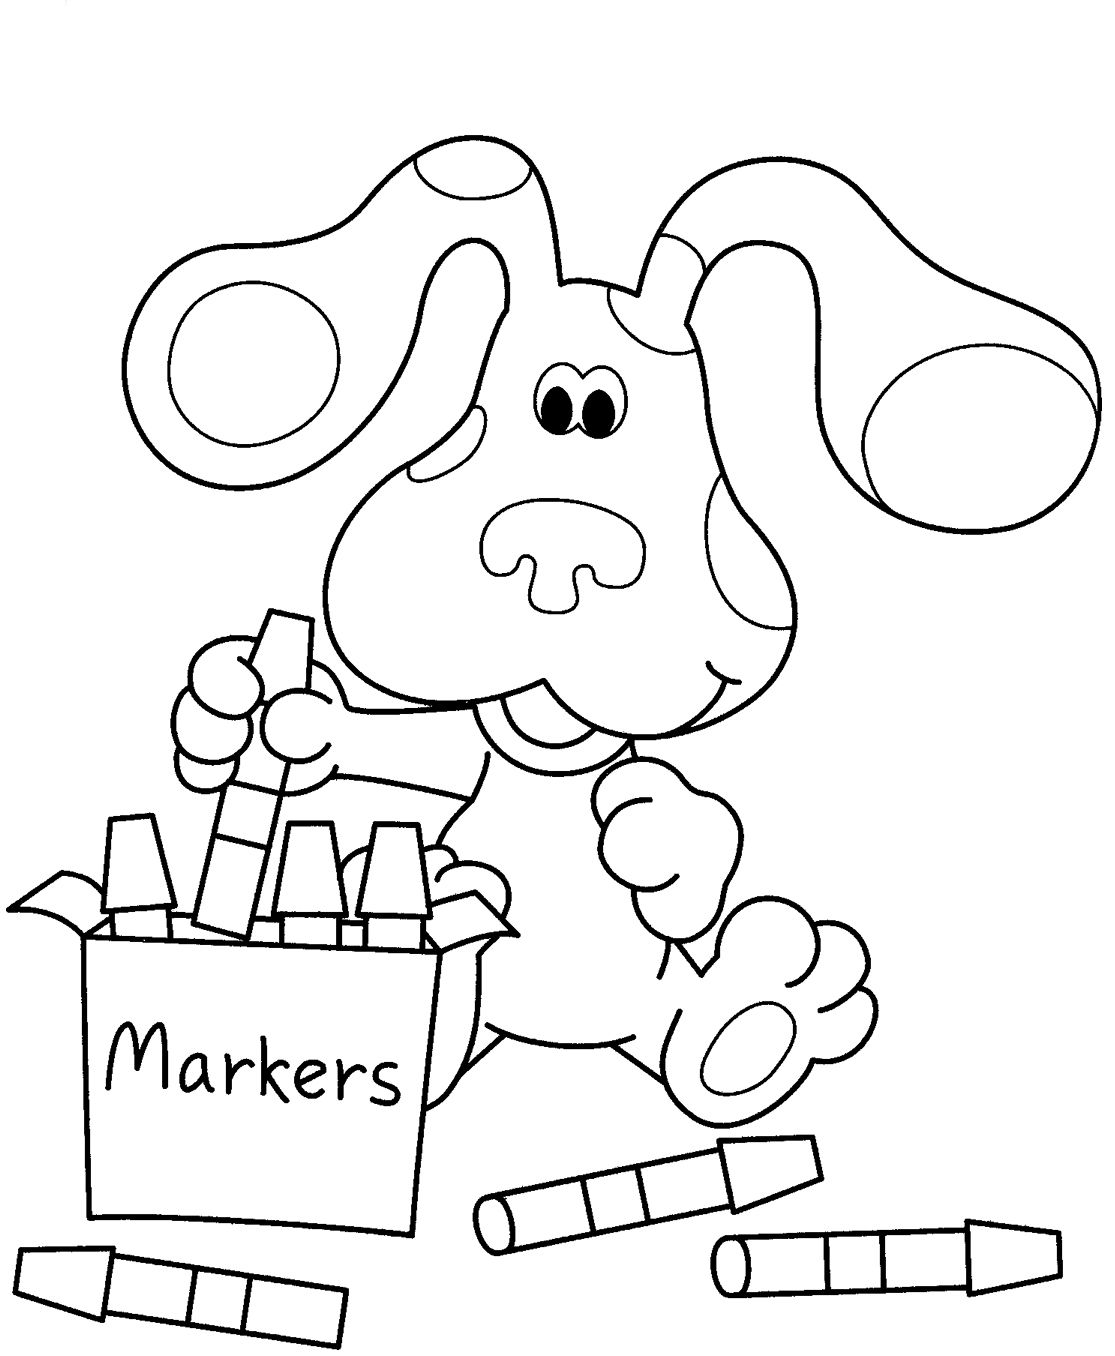 nickelodeon coloring pages - photo#32